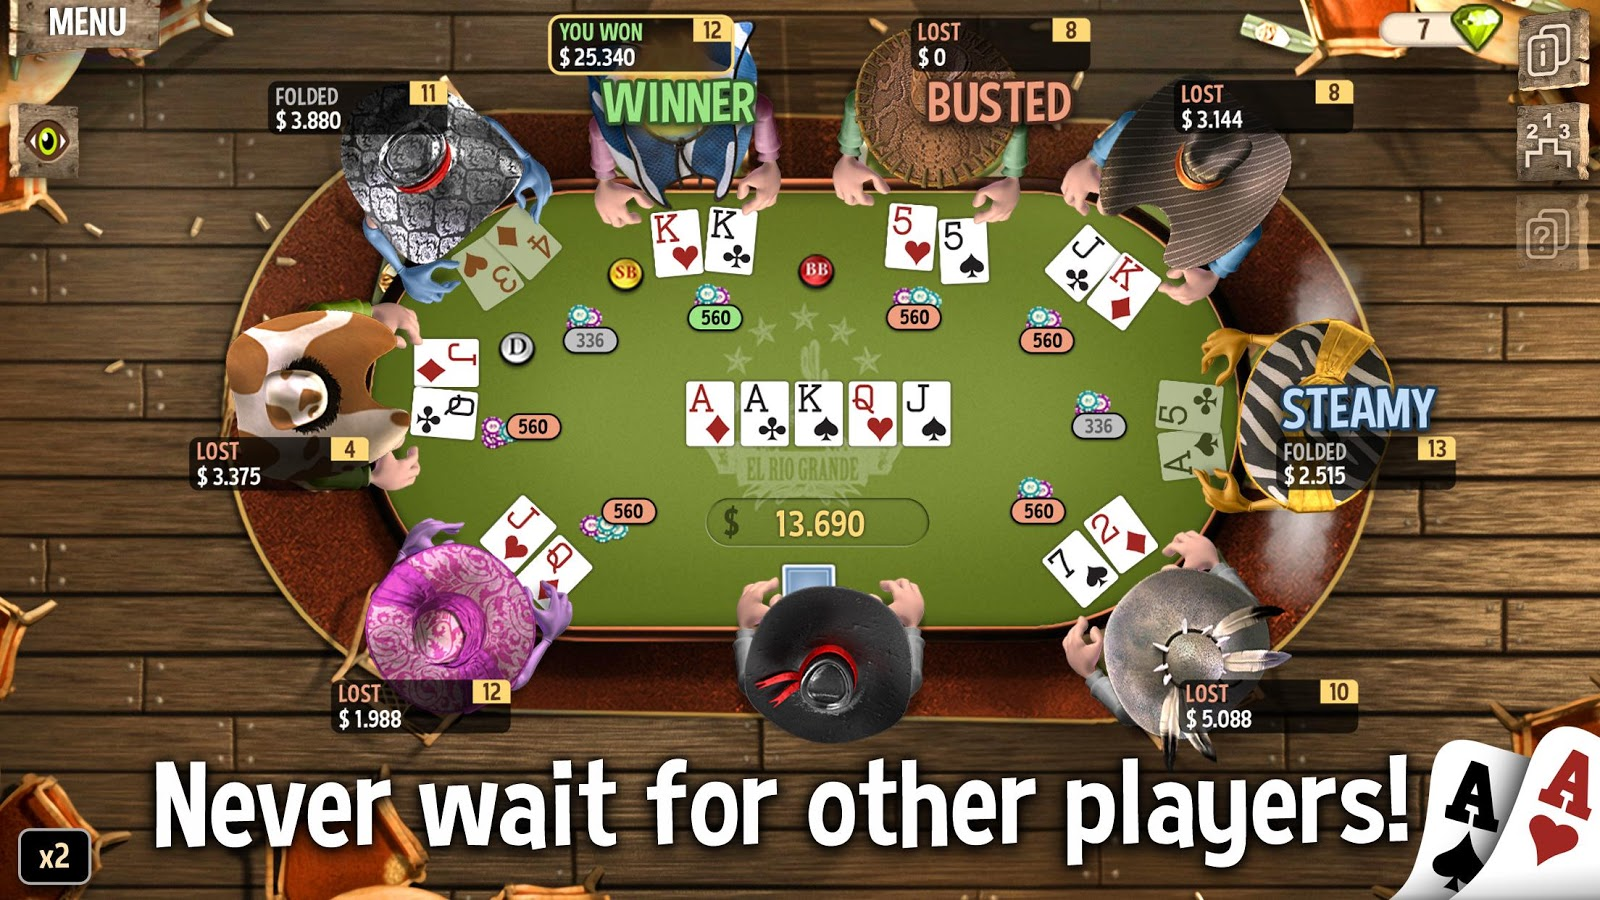 Governor of Poker 2 Premium Screenshot 6